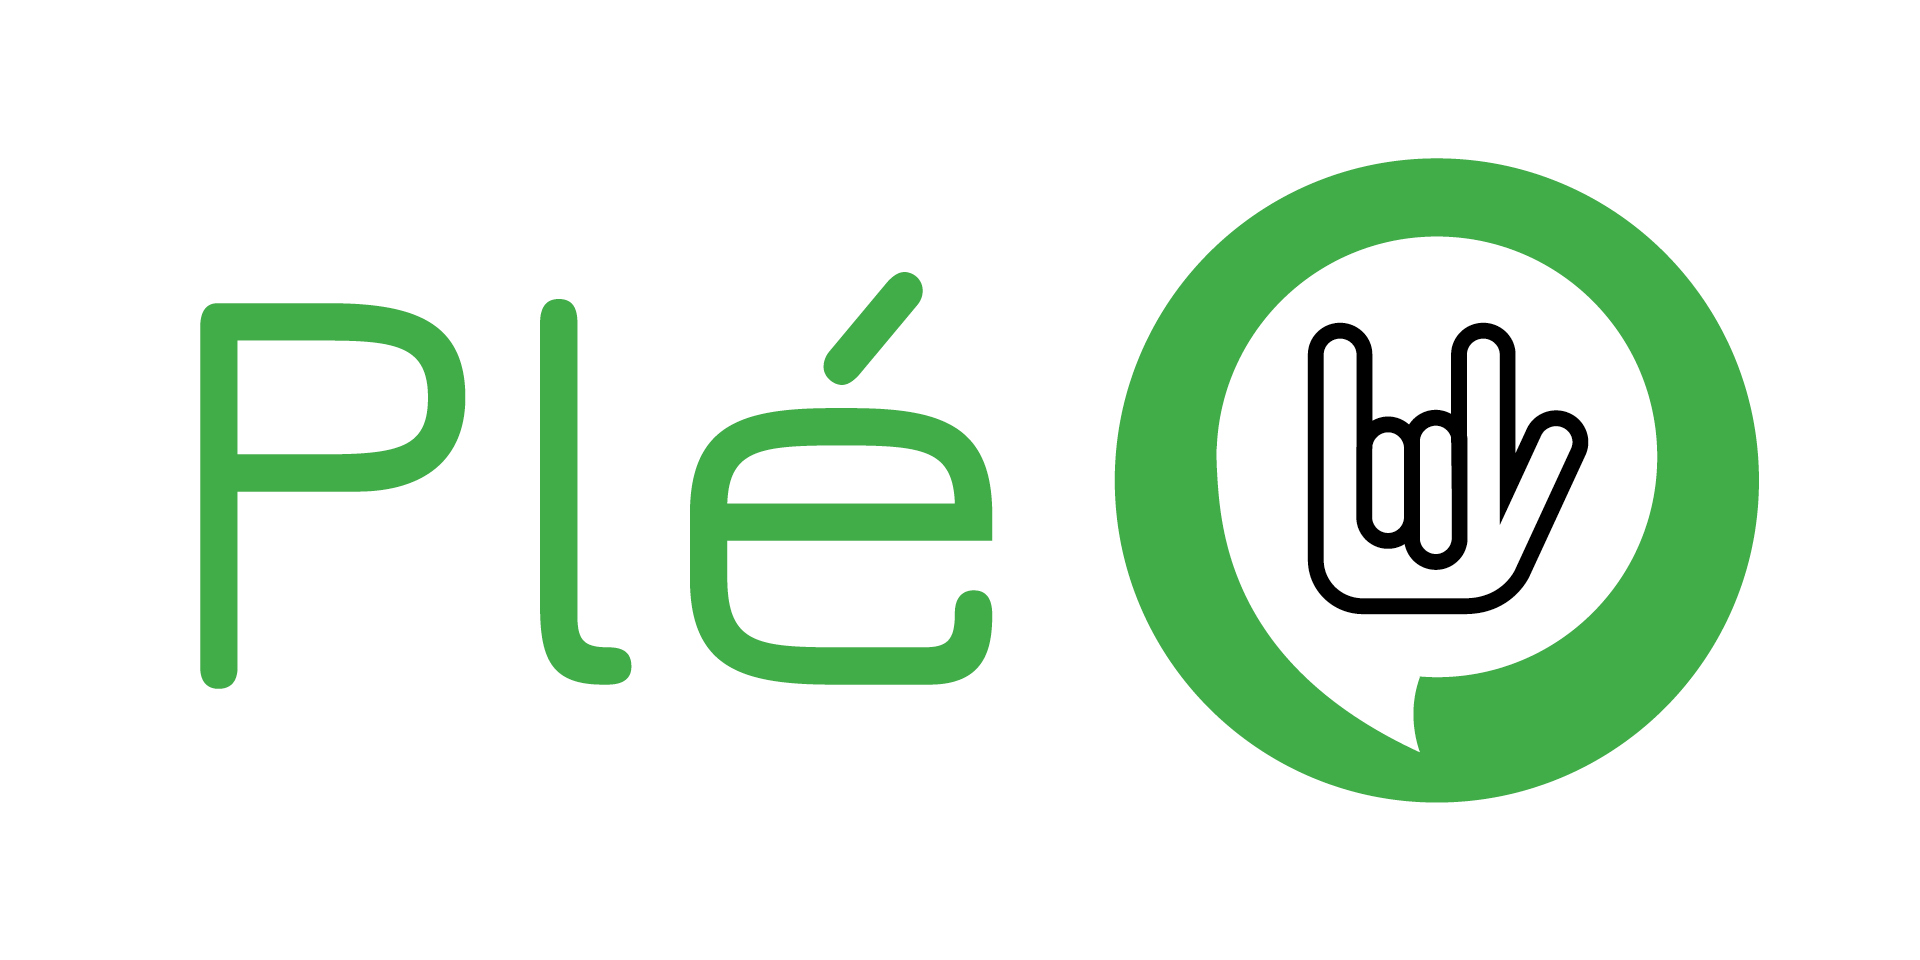 Ple, Icon of hand language in speaking bubble